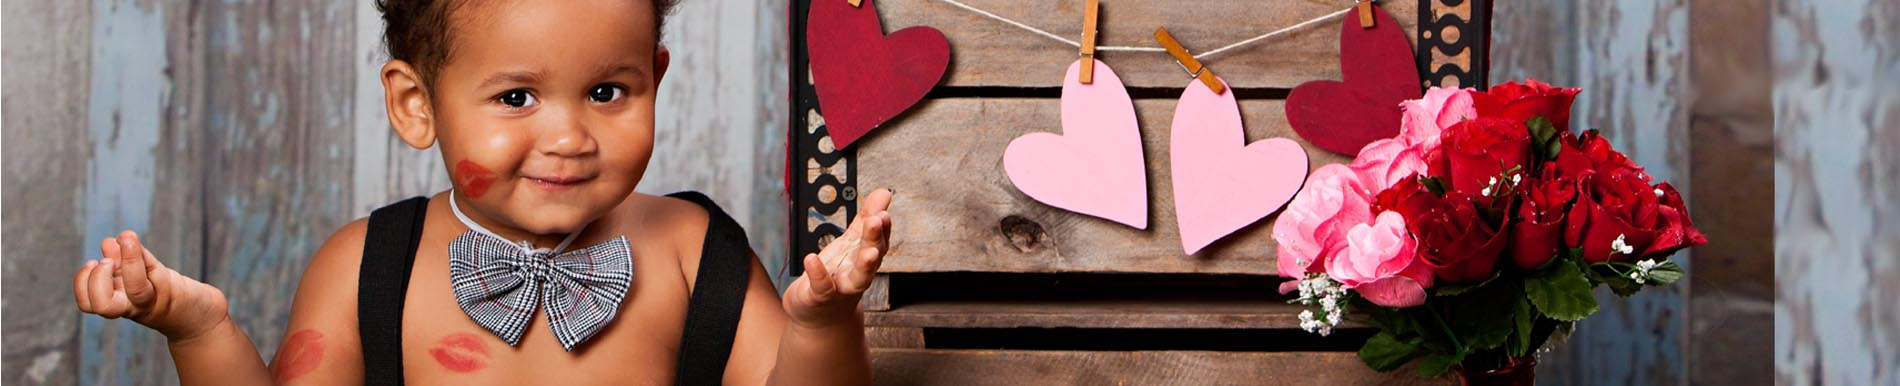 https://www.healthychildren.org/SiteCollectionImage-Homepage-Banners/Valentine_header_baby_kisses.jpg